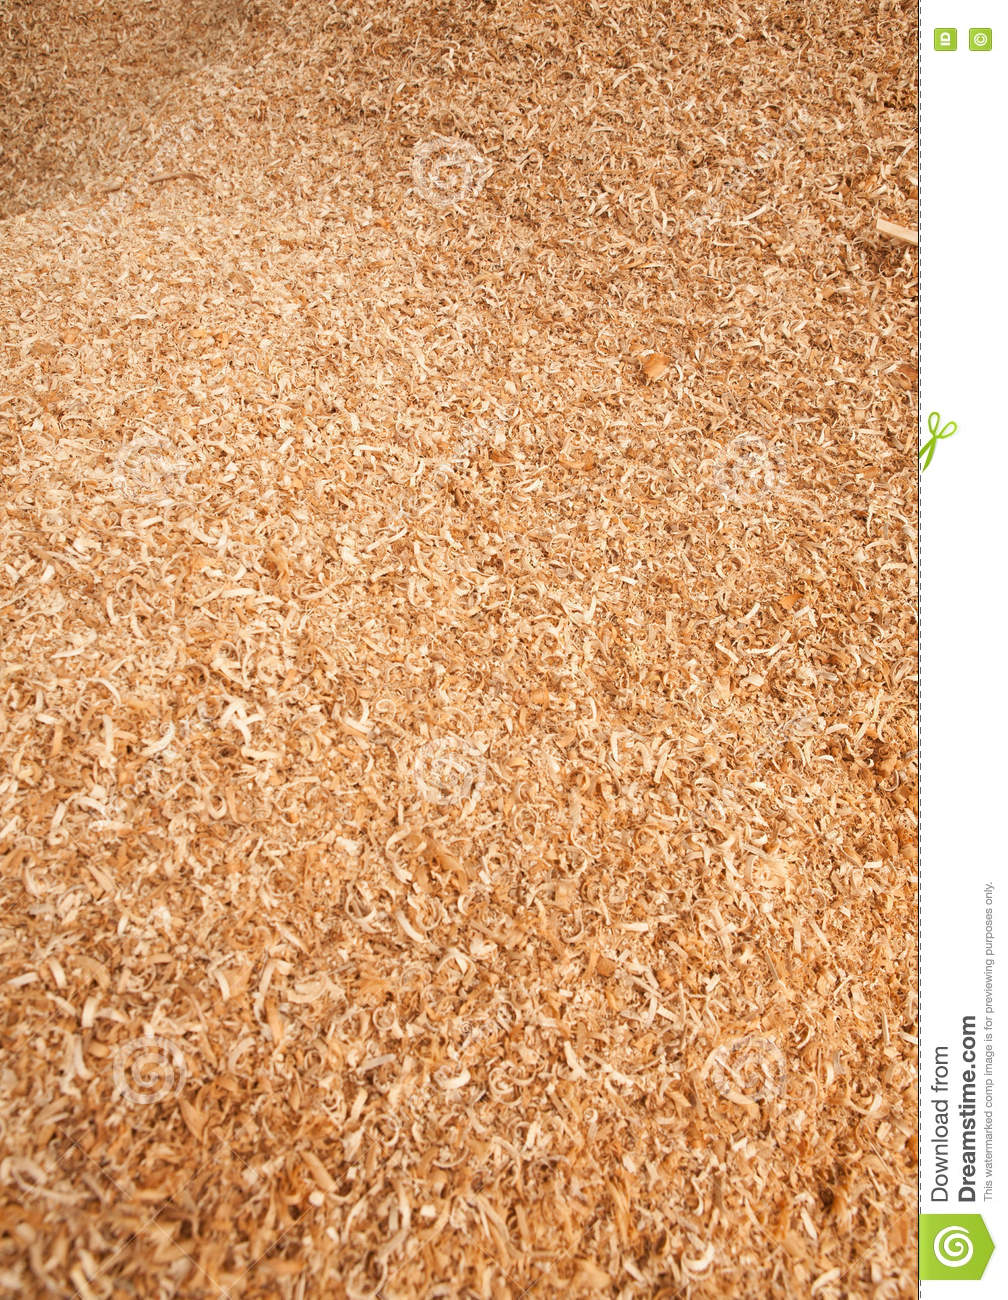 Teak Wood Sawdust Texture stock image  Image of recycling